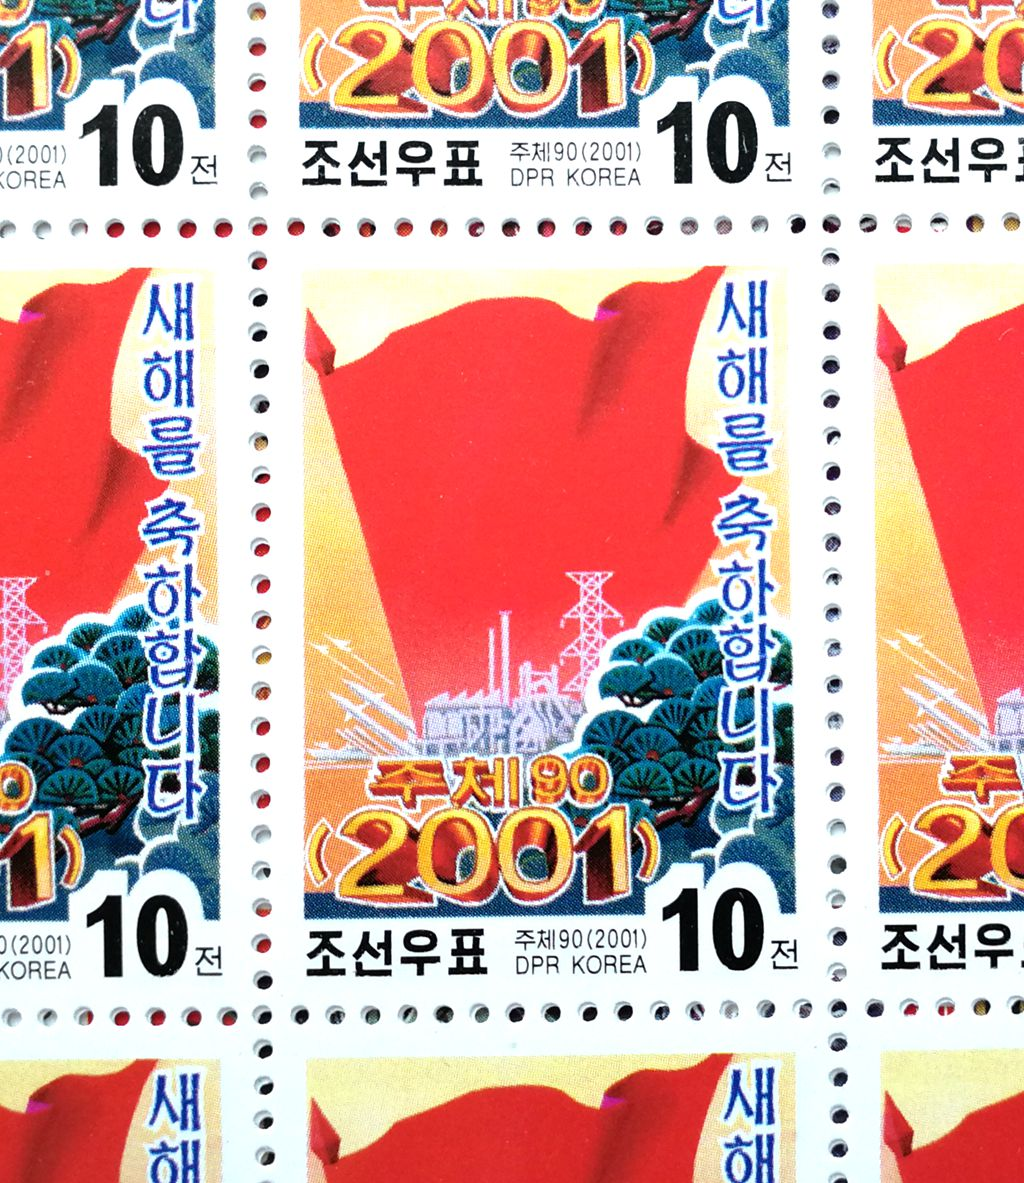 L4390, Korea 2001 New Year Stamp with Red Flag, Full Sheet of 65 Pcs Stamps